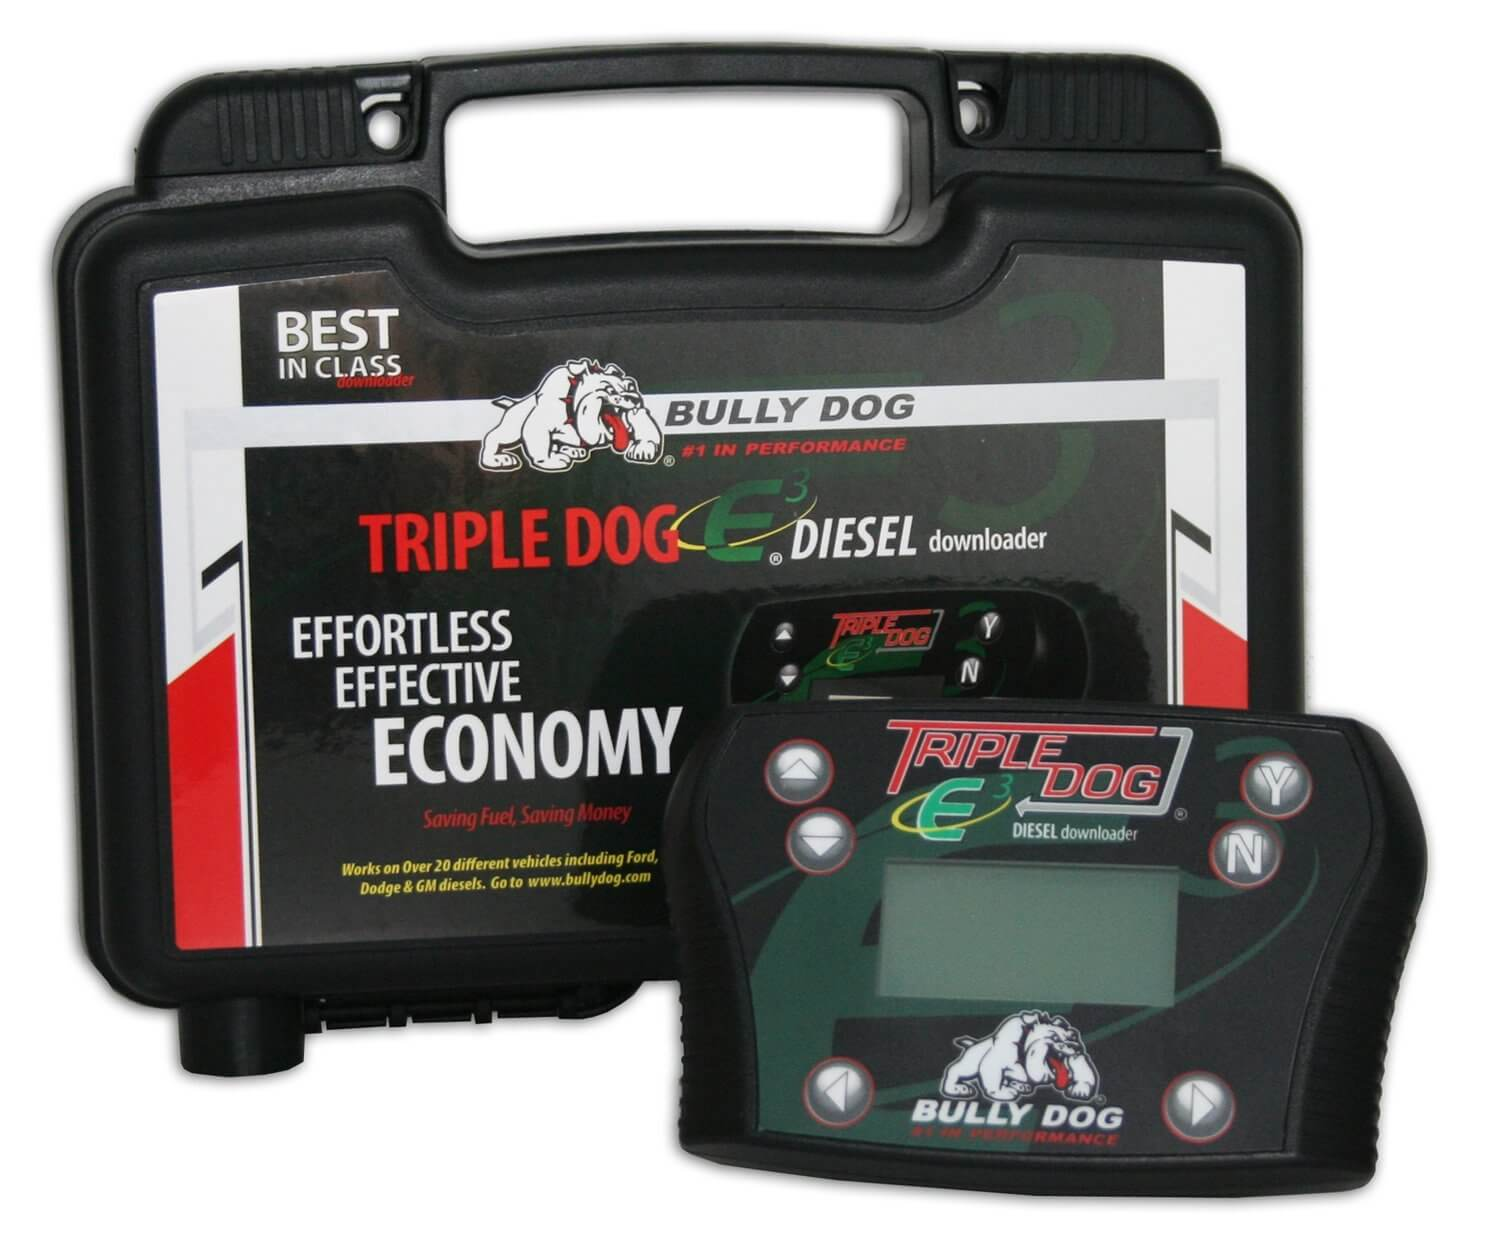 Triple Dog E3 Diesel Downloader